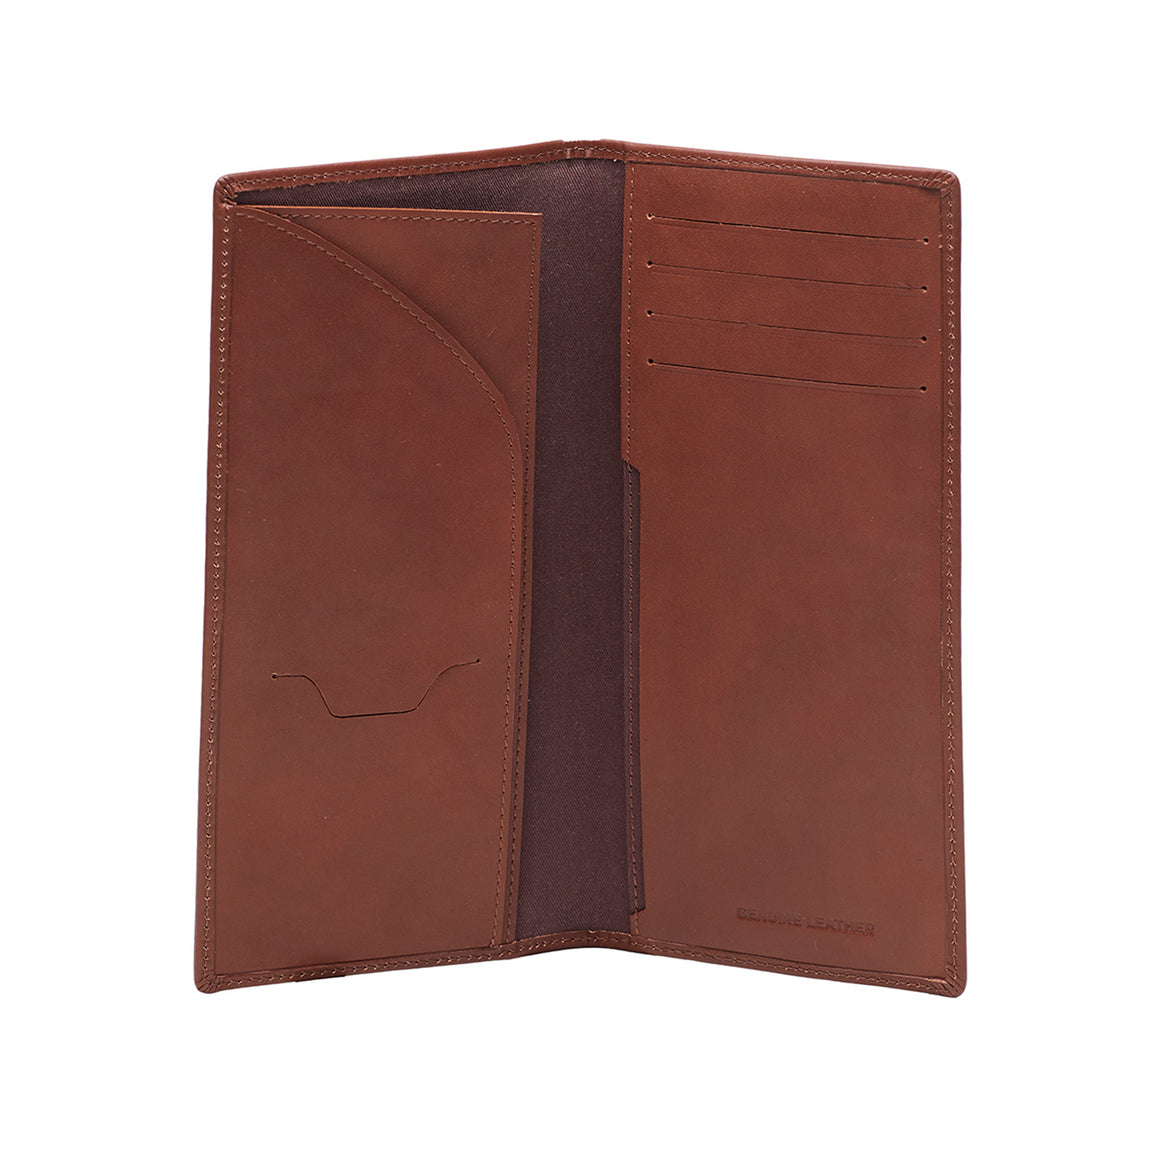 WT 0038 - TOHL PISANI MEN'S WALLET - VINTAGE TAN